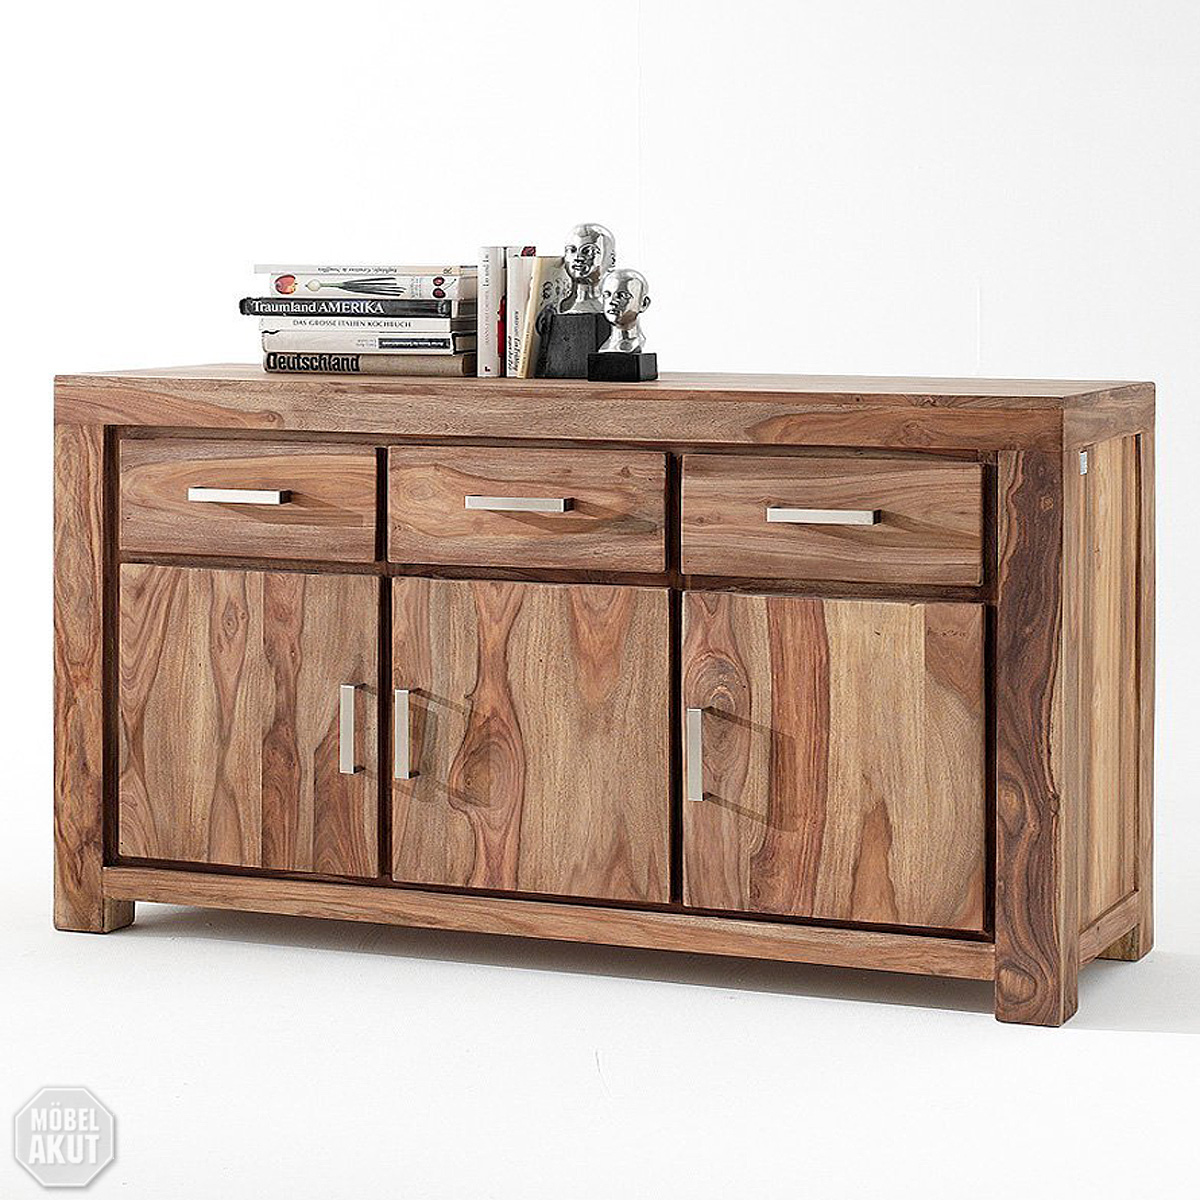 Sideboard maja kommode massivholz sheesham natur ebay for Sideboard kommode